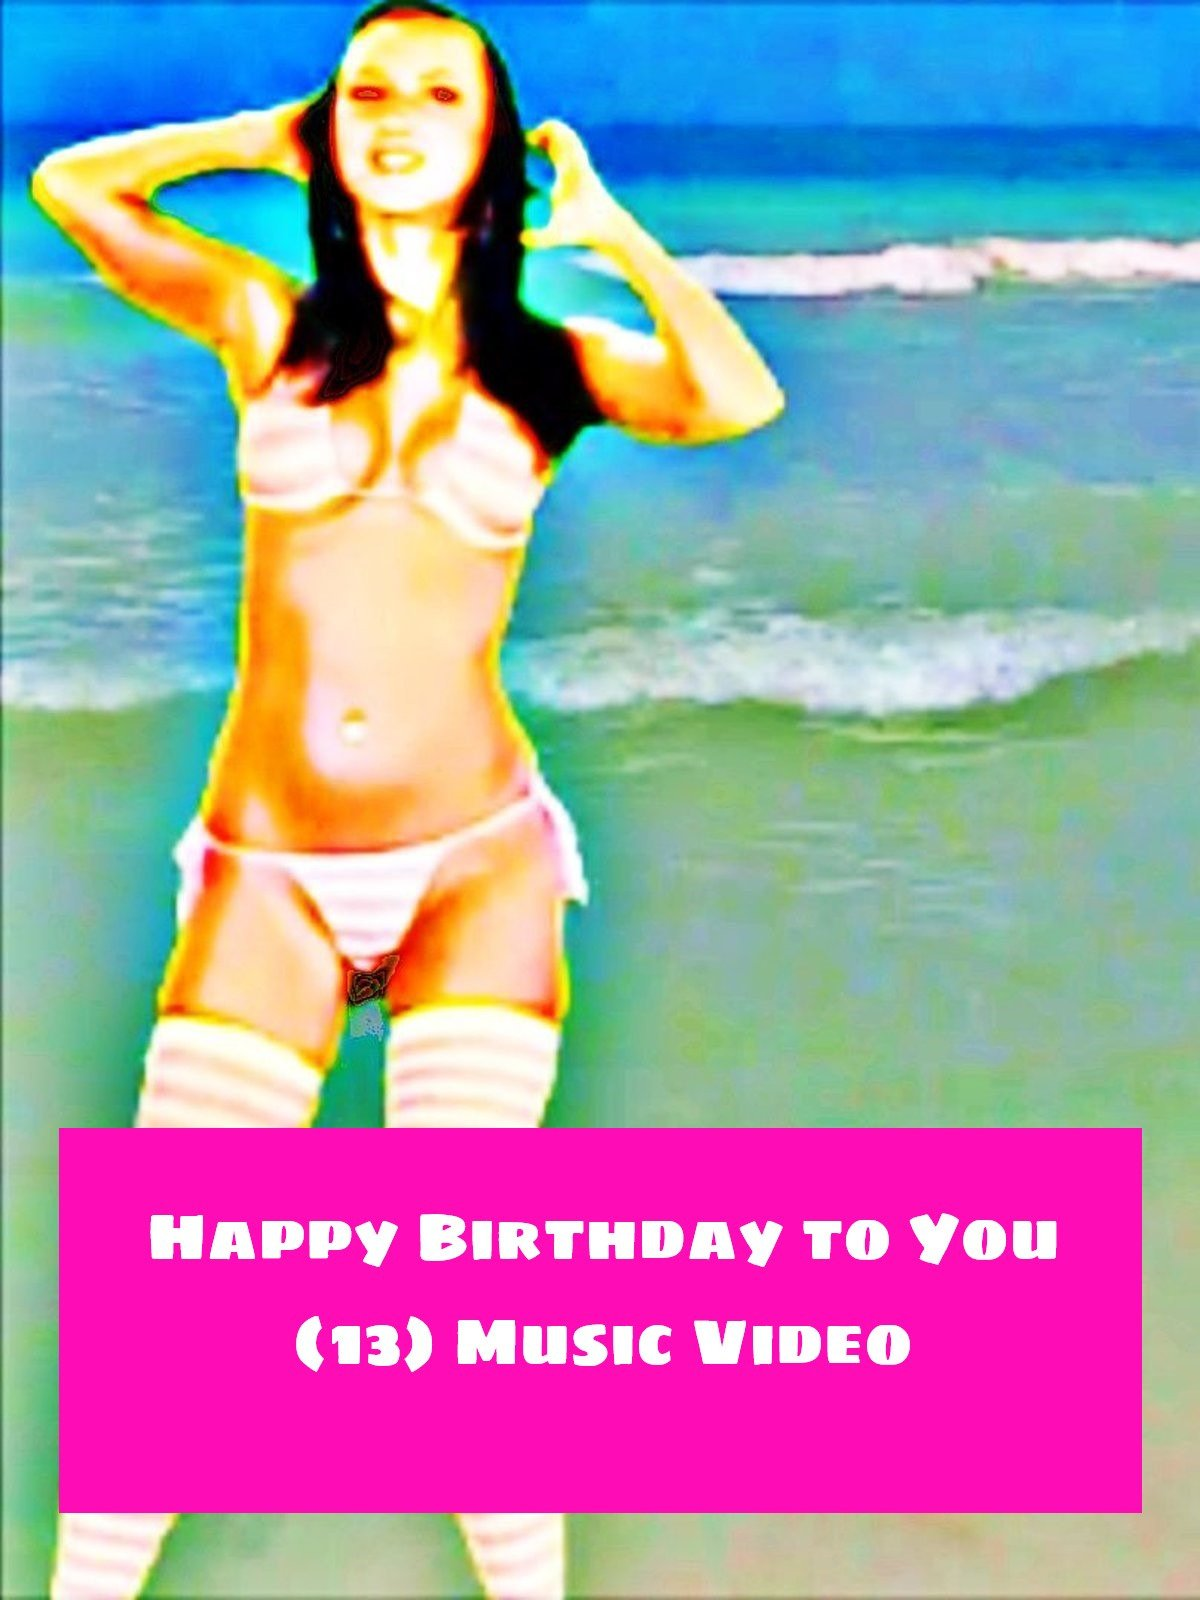 Happy Birthday to You (13) Music Video